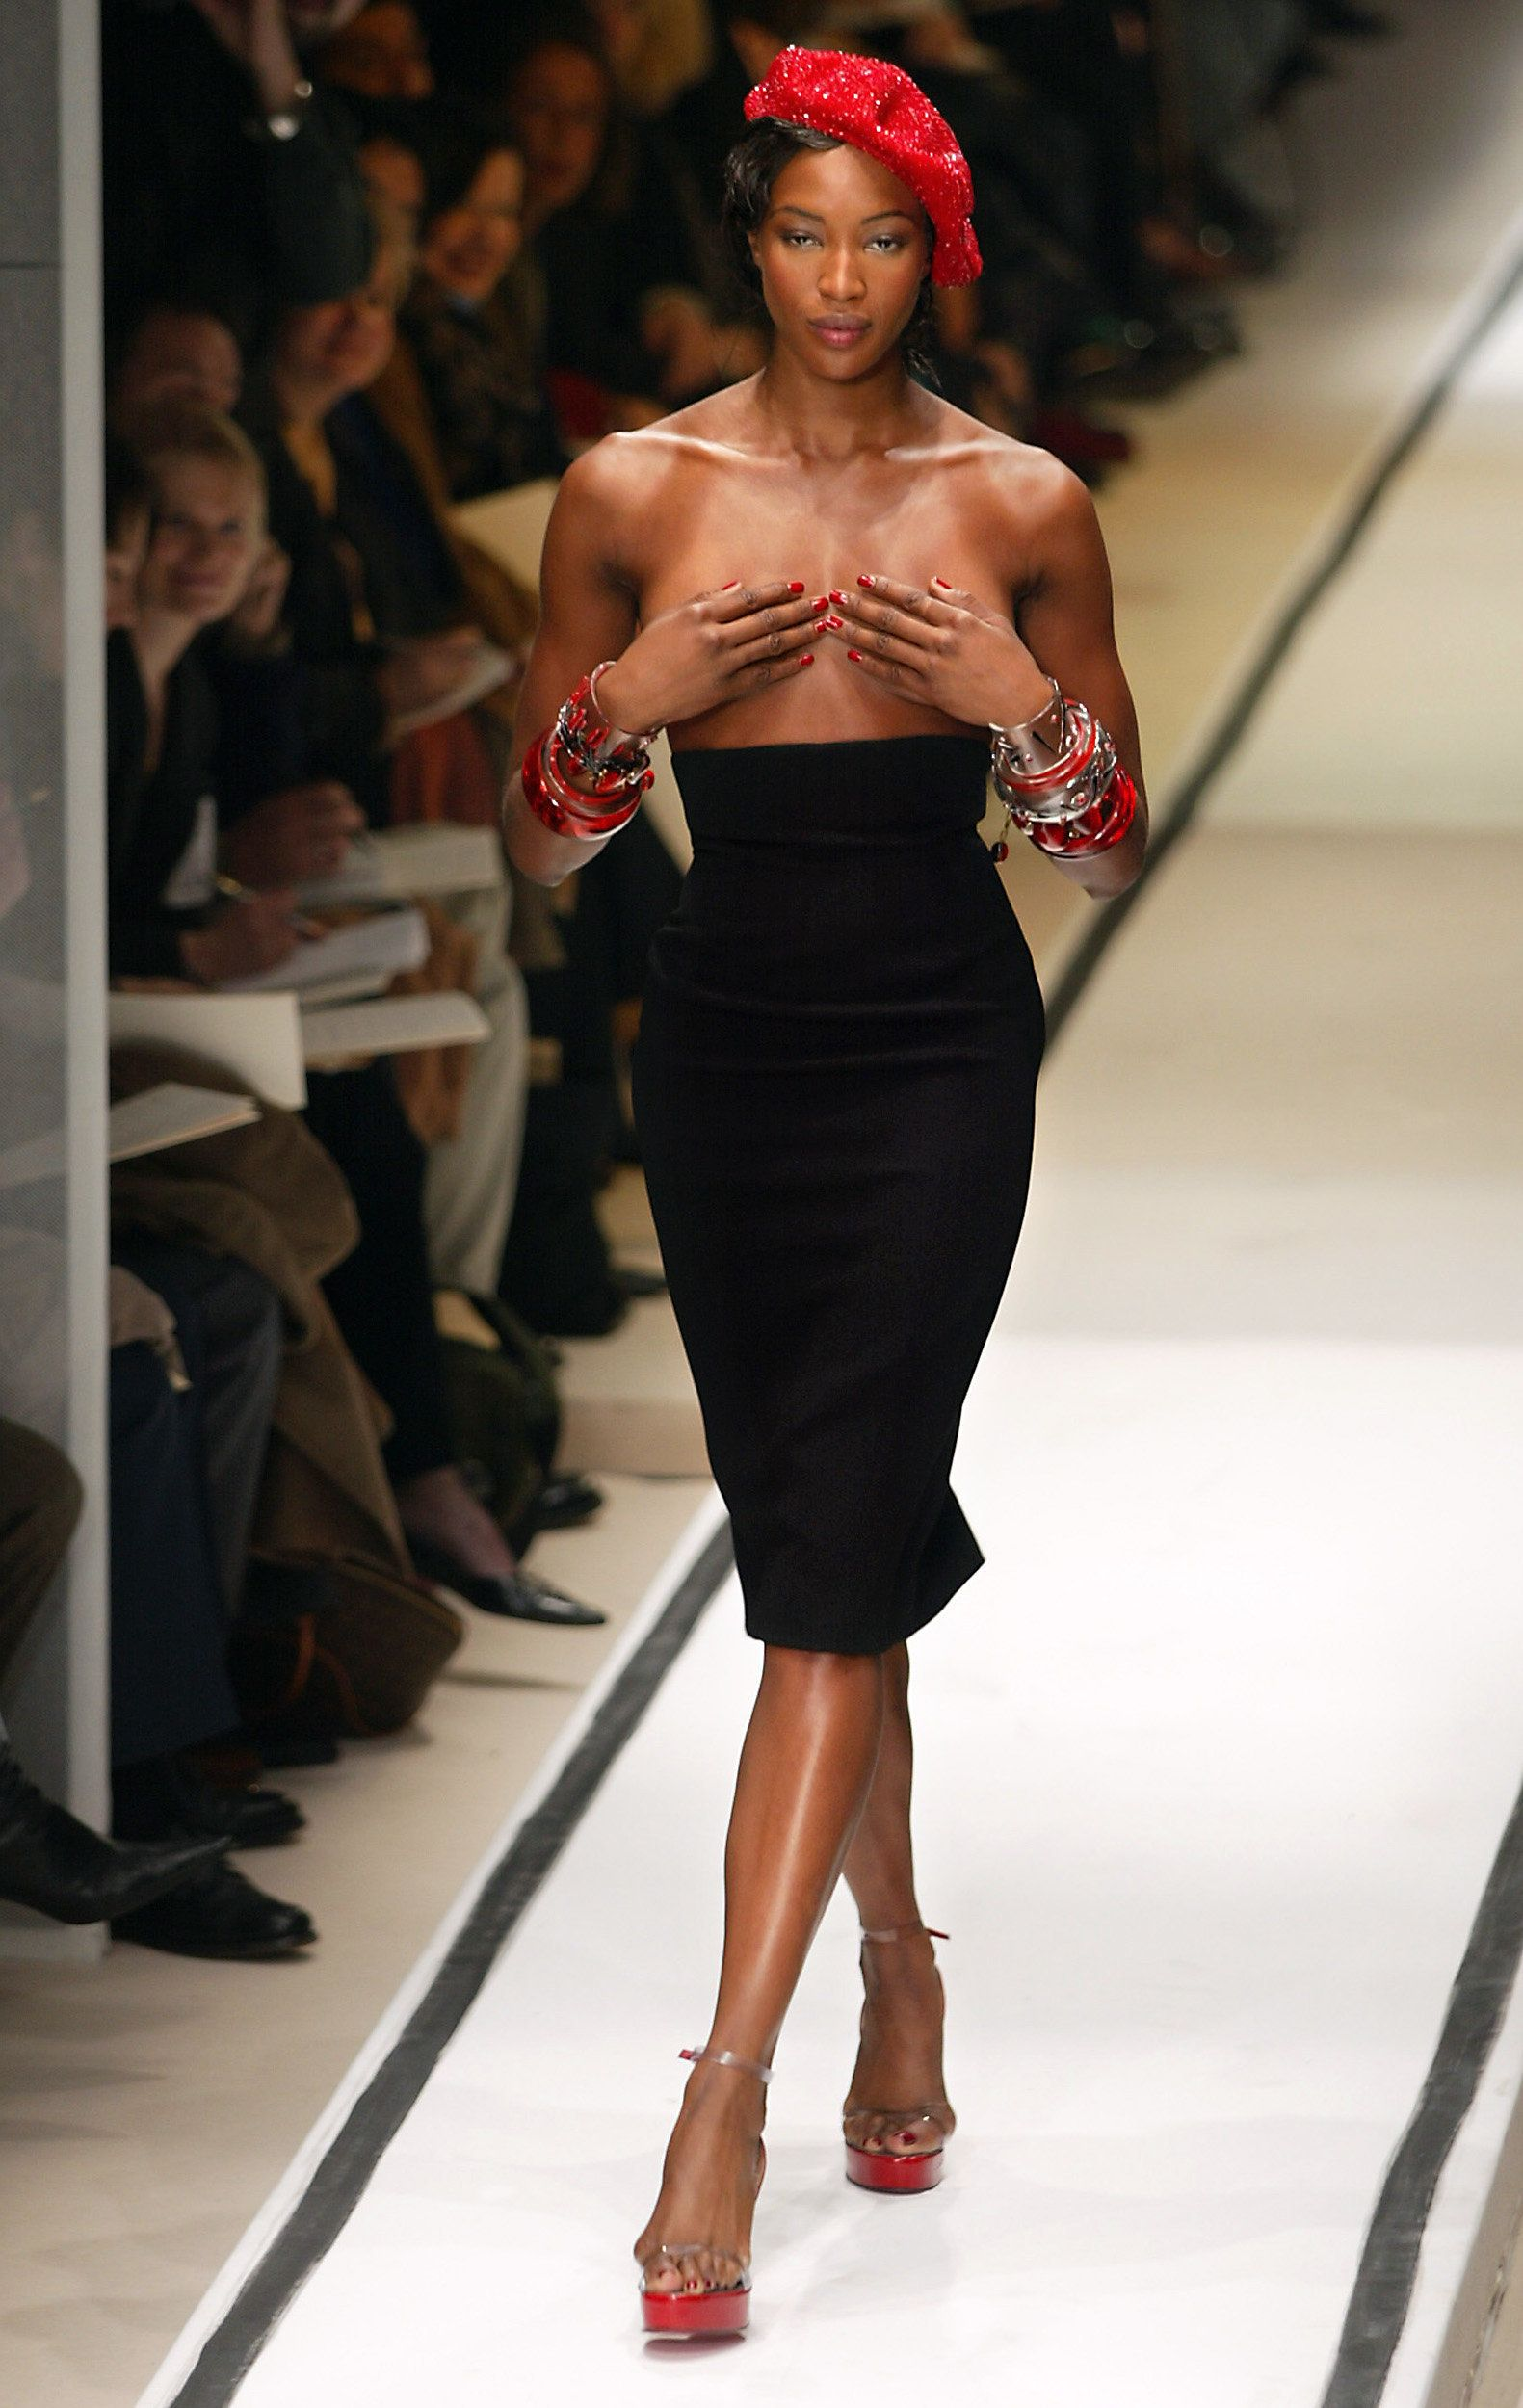 Walking the runway at a Jean-Paul Gaultier show in Paris.